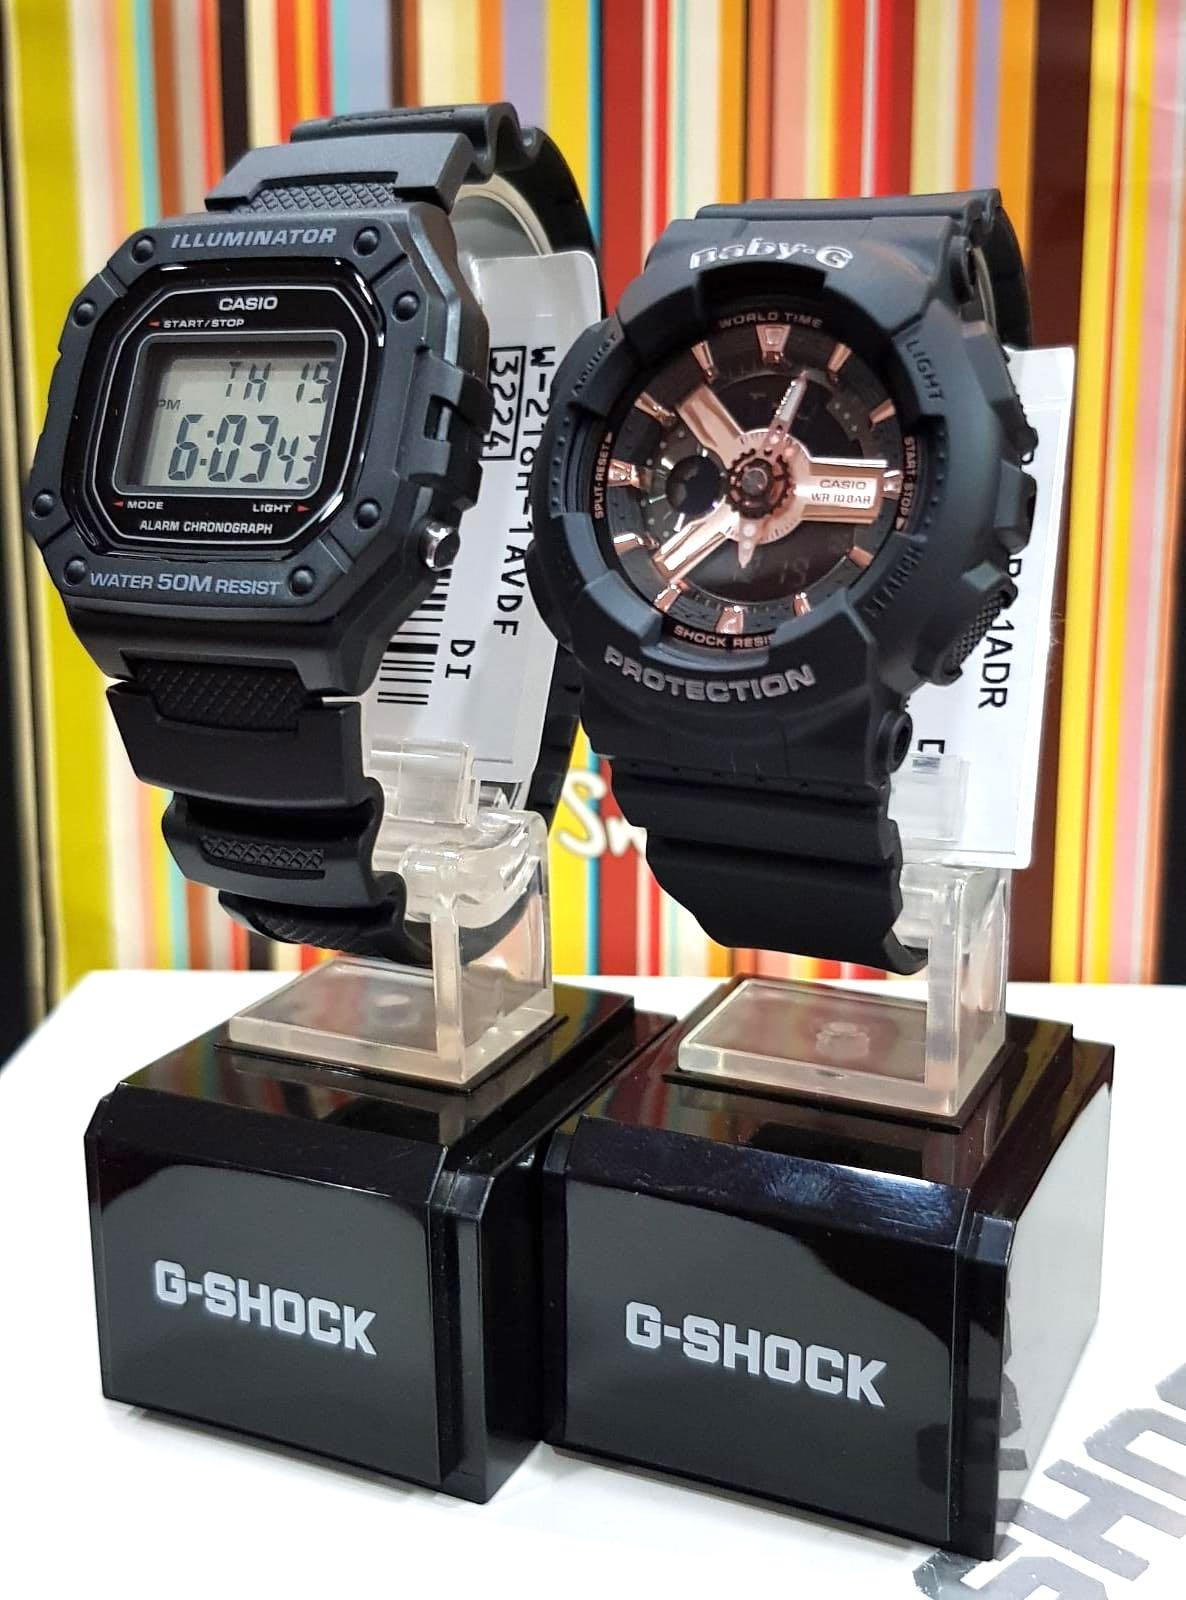 NEW🌟COUPLE💝SET : CASIO BABYG UNISEX SPORTS WATCH : 100% ORIGINAL AUTHENTIC : By BABY-G-SHOCK ( GSHOCK ) COMPANY : W-218H-1AV + BA-110RG-1A / BA-110-1A